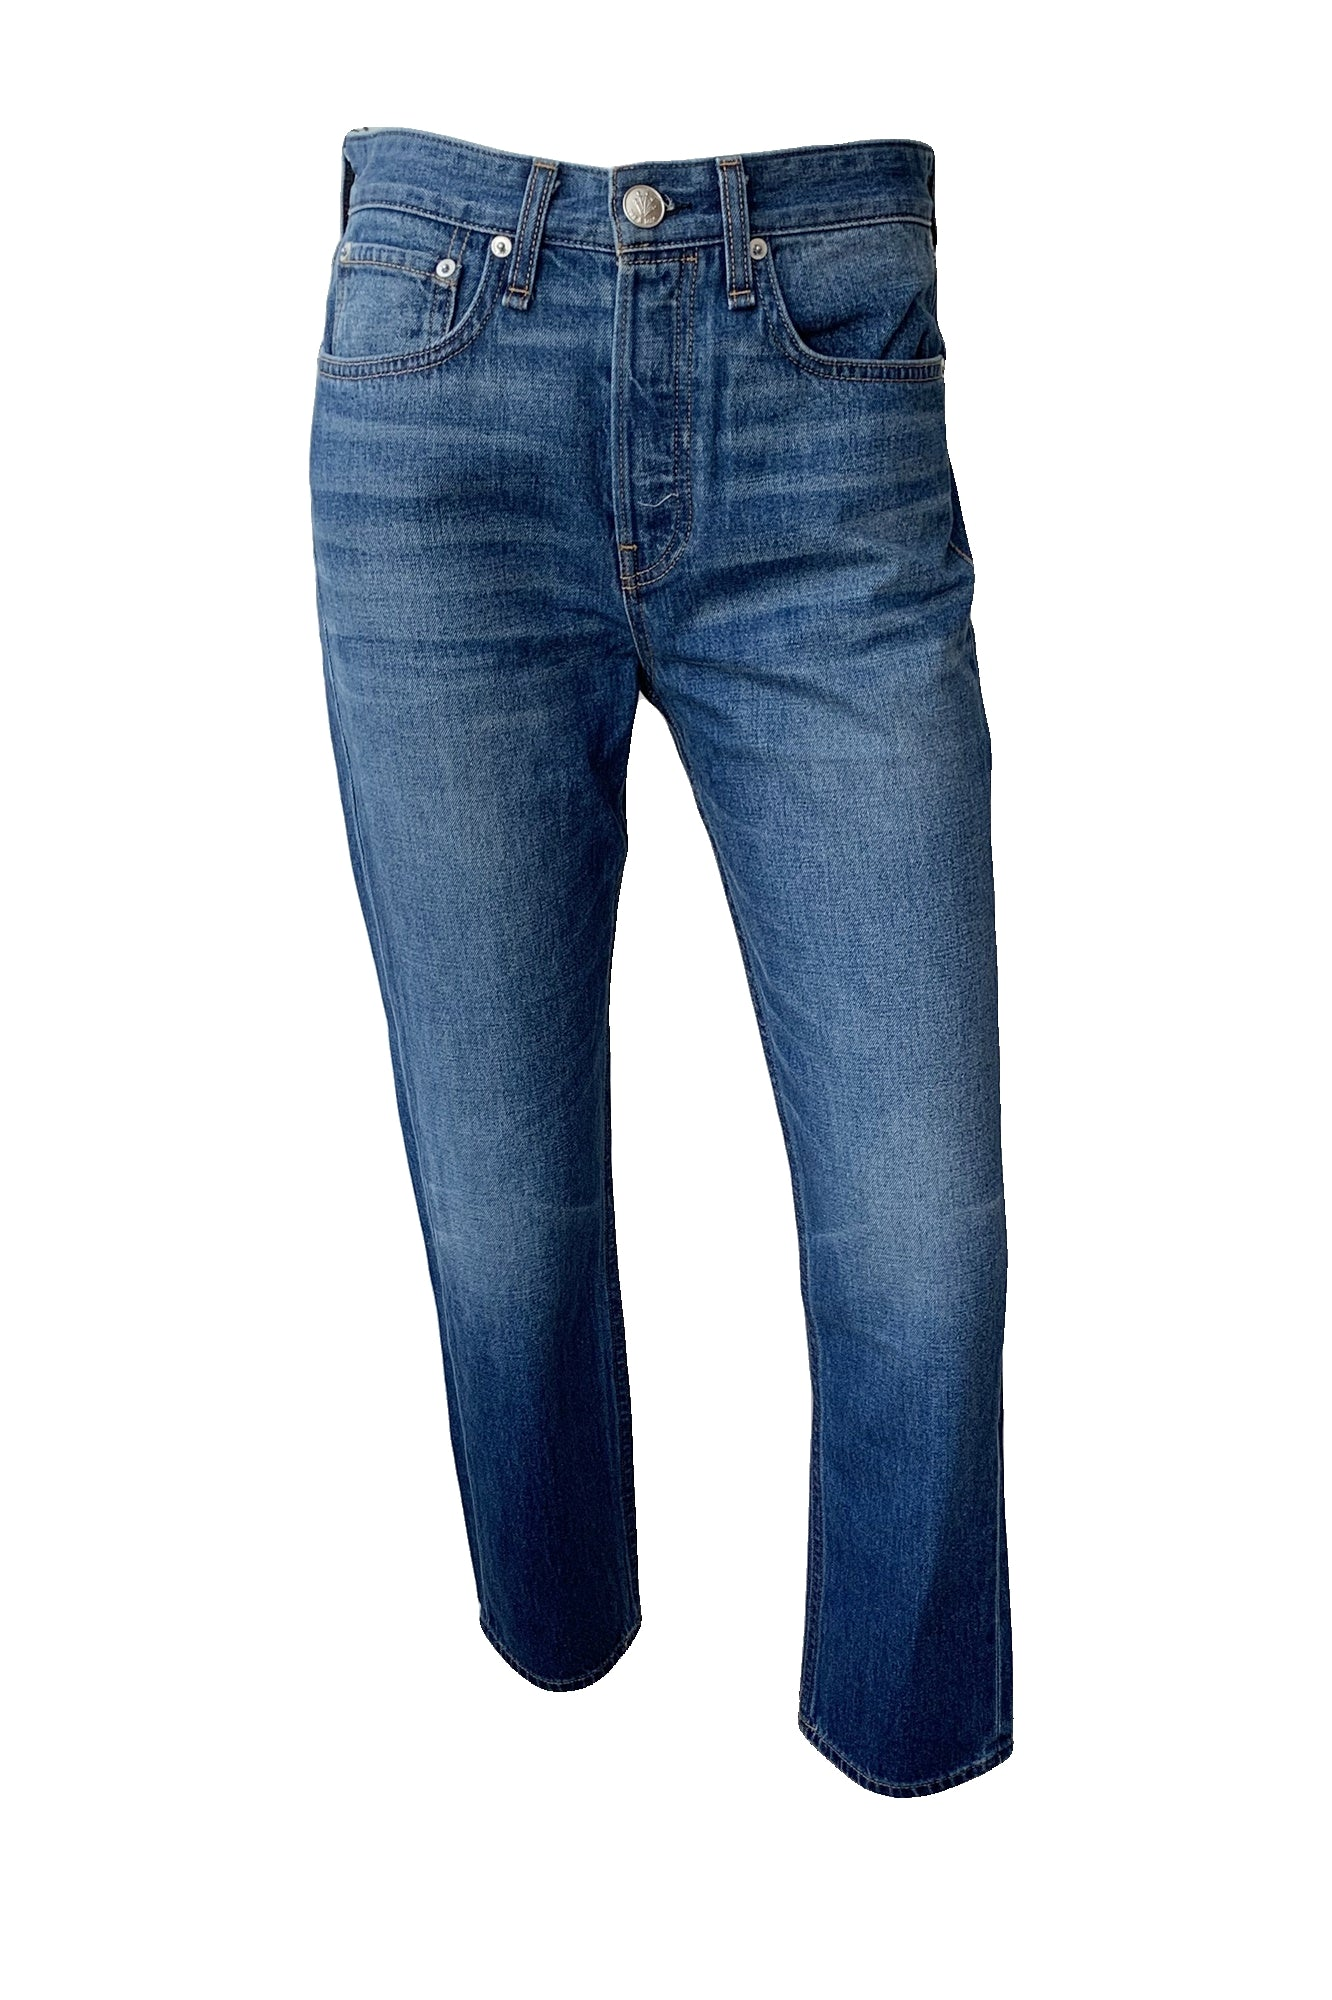 Maya High Rise Ankle Slim Jeans - Augusta Twenty